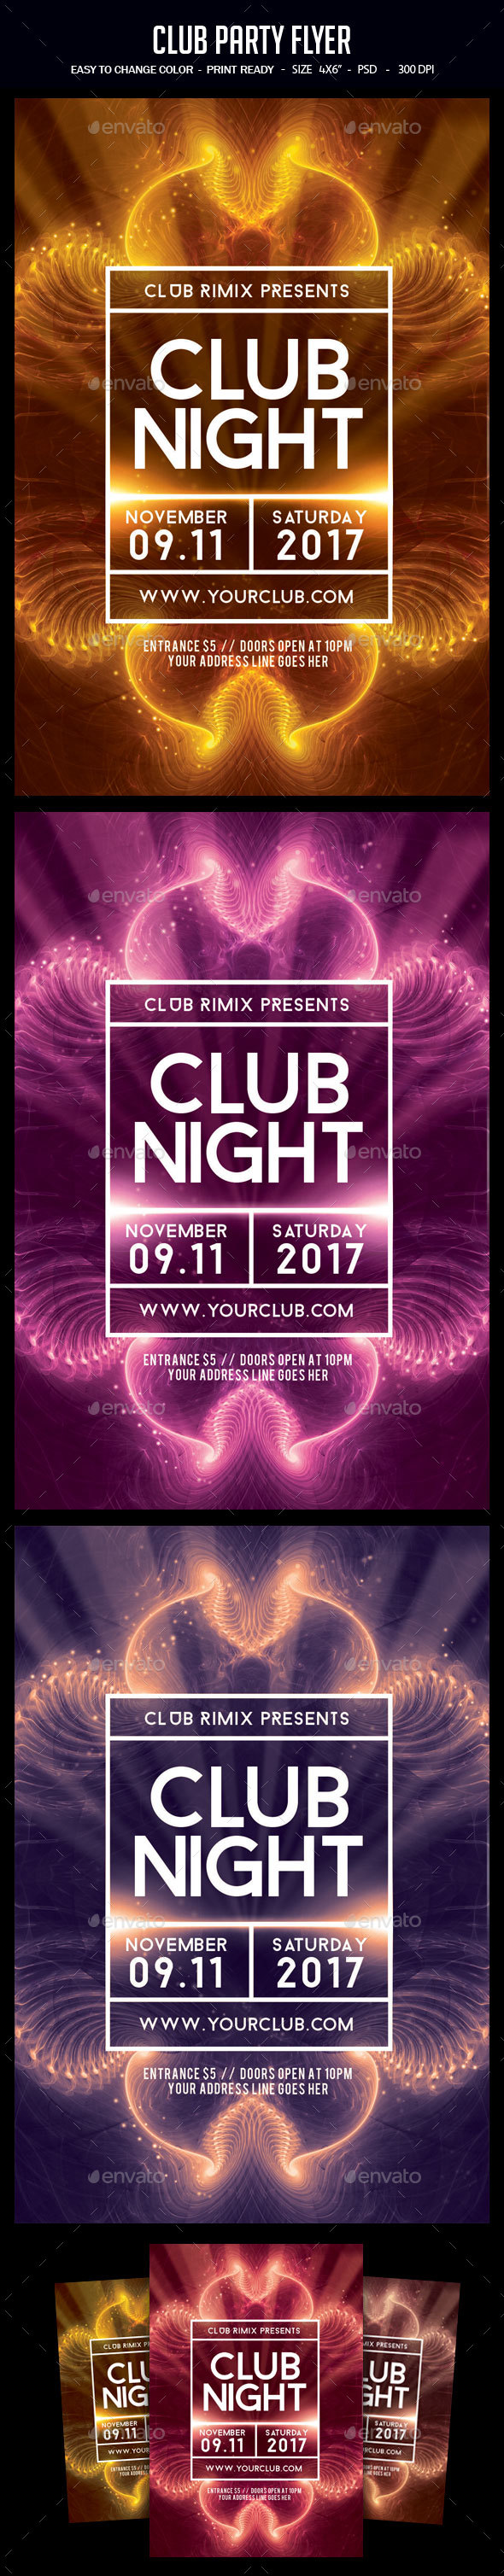 Club Party Flyer - Clubs & Parties Events